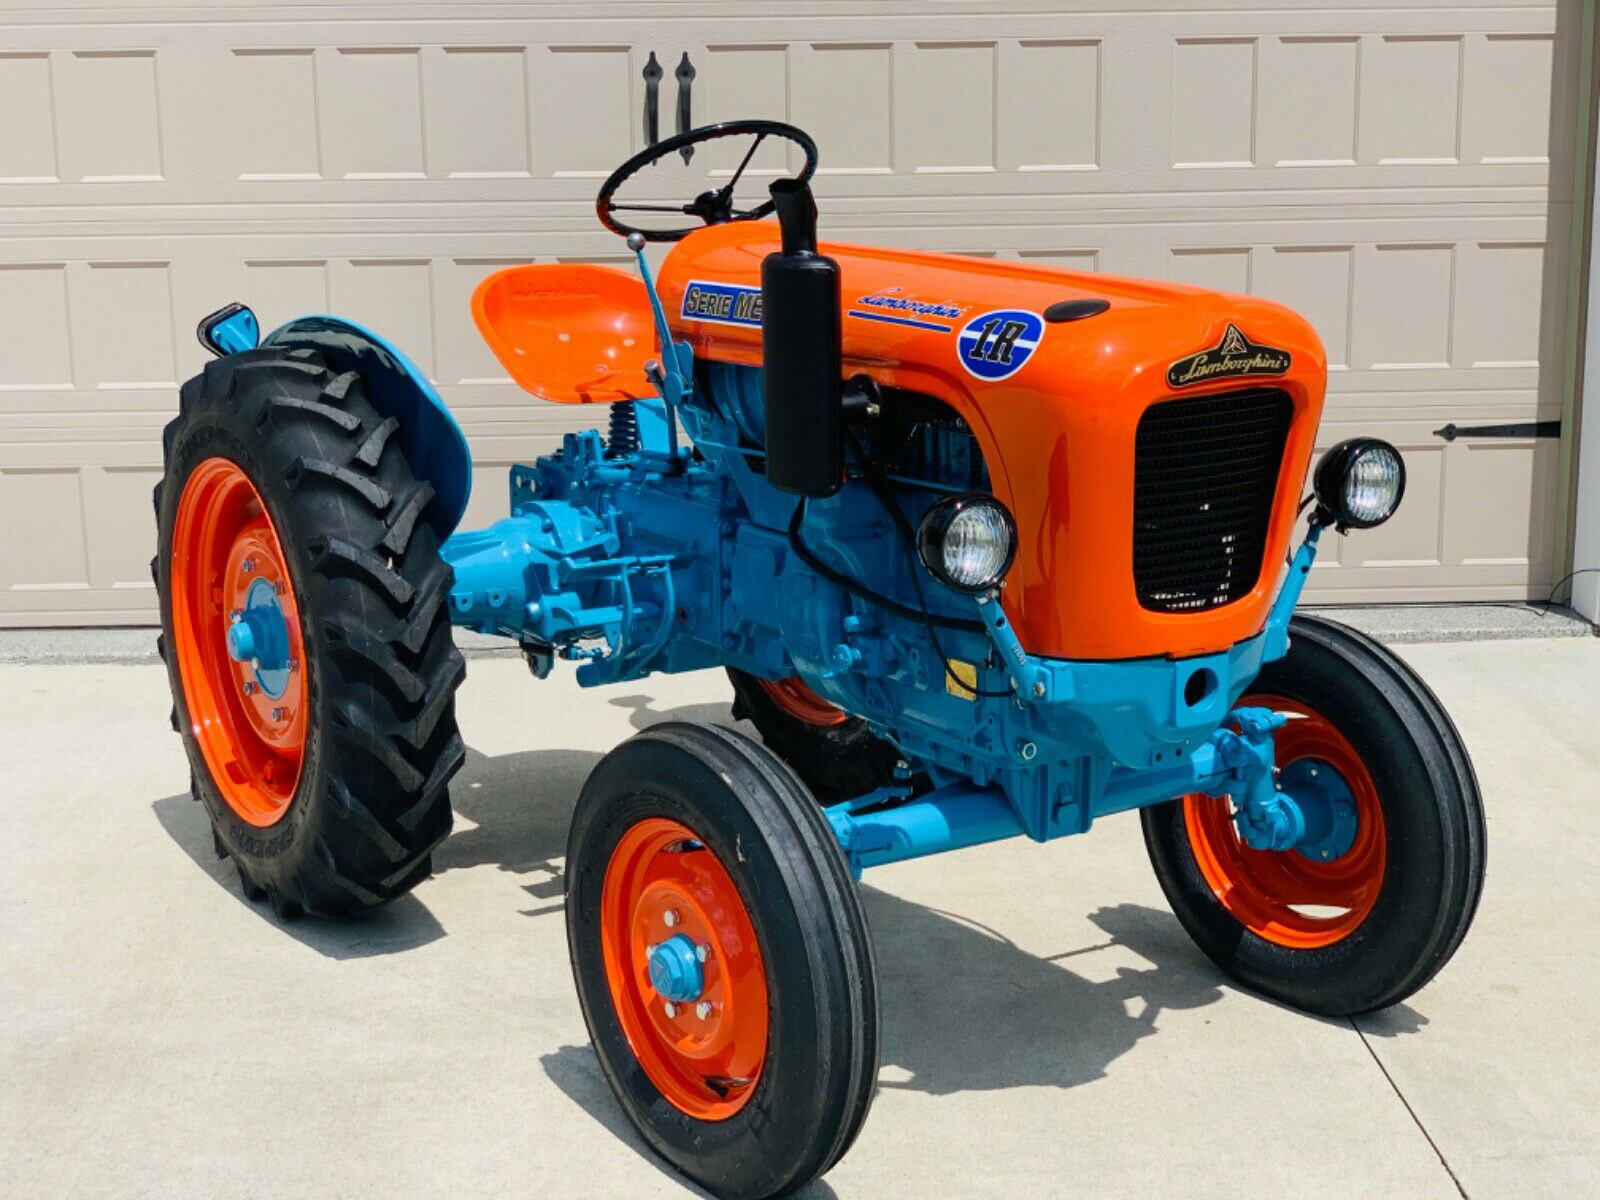 A Lamborghini Tractor Is for the Lambo Fan Who Has Everything